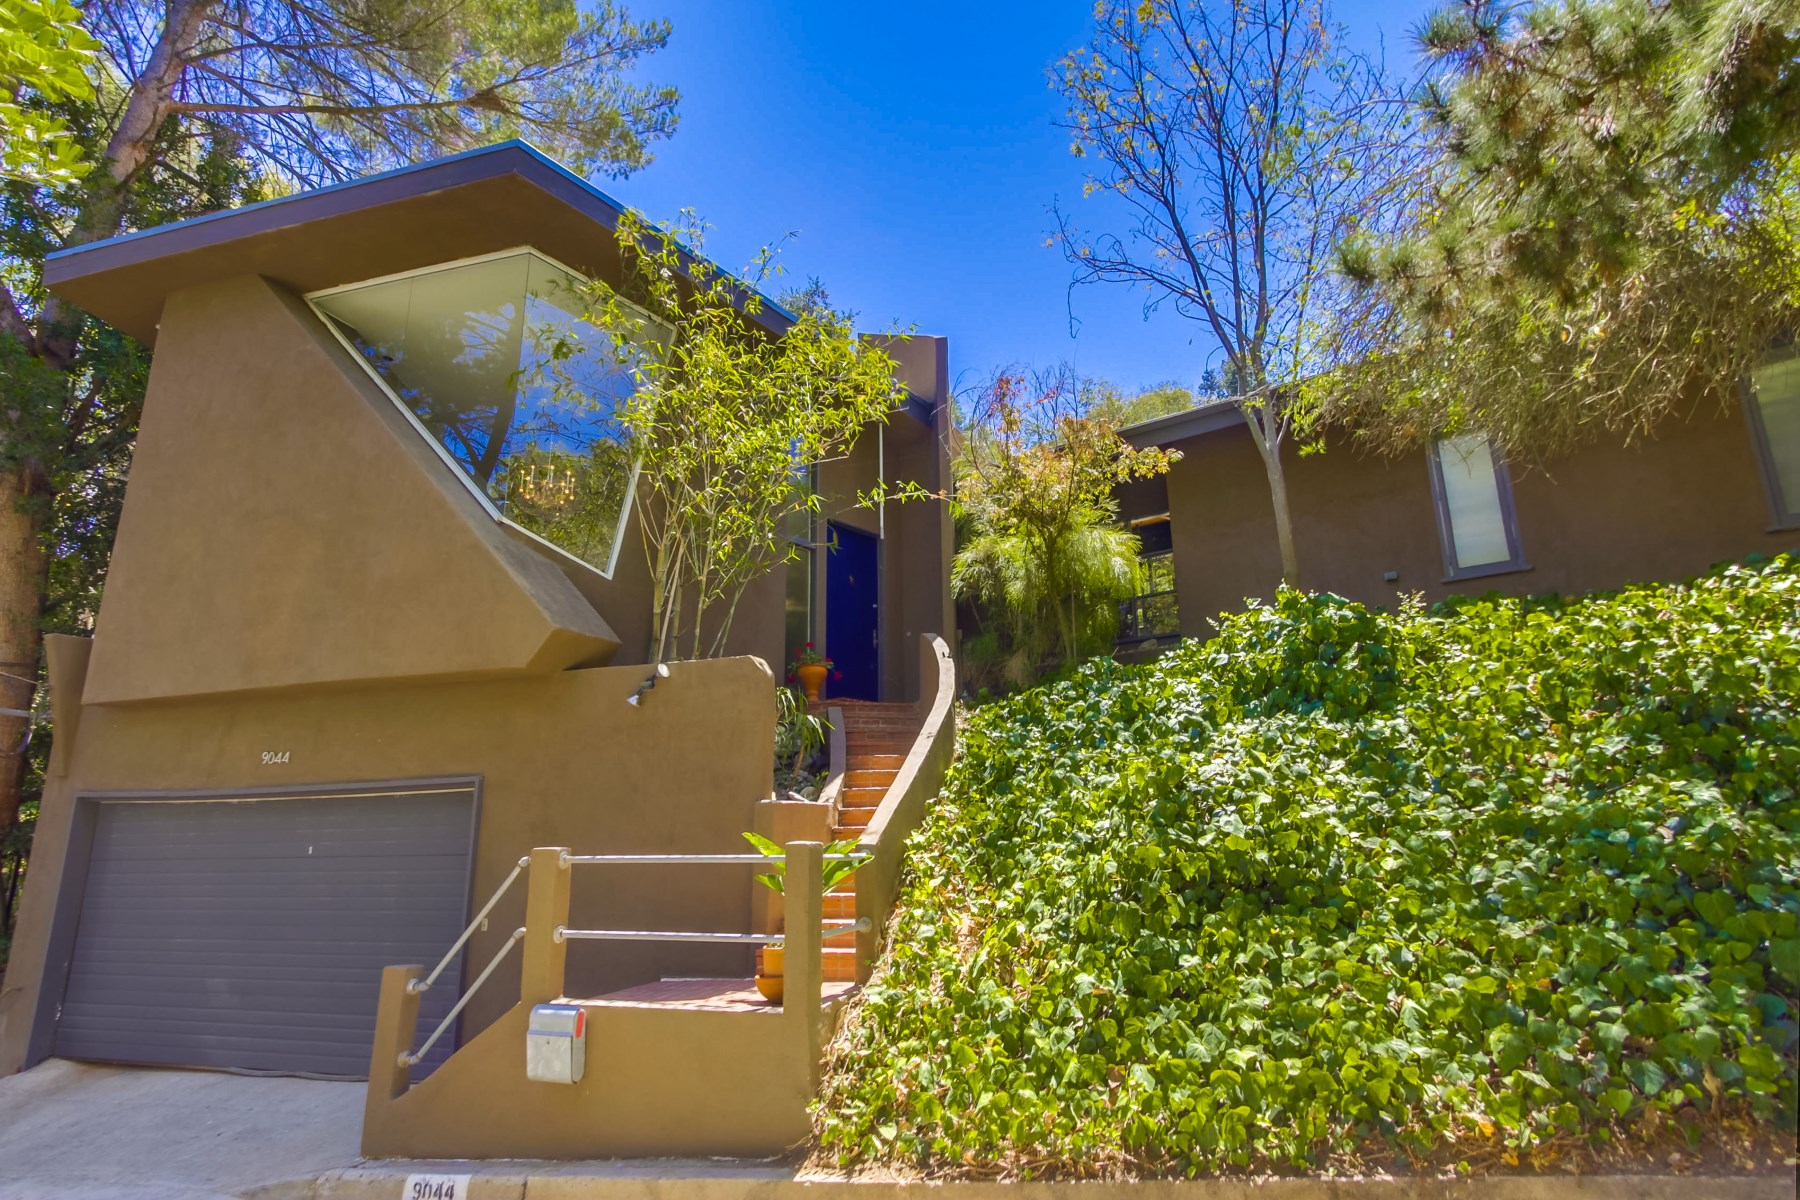 Single Family Home for Sale at 9044 Hollywood Hills Road Hollywood Hills, Los Angeles, California, 90046 United States